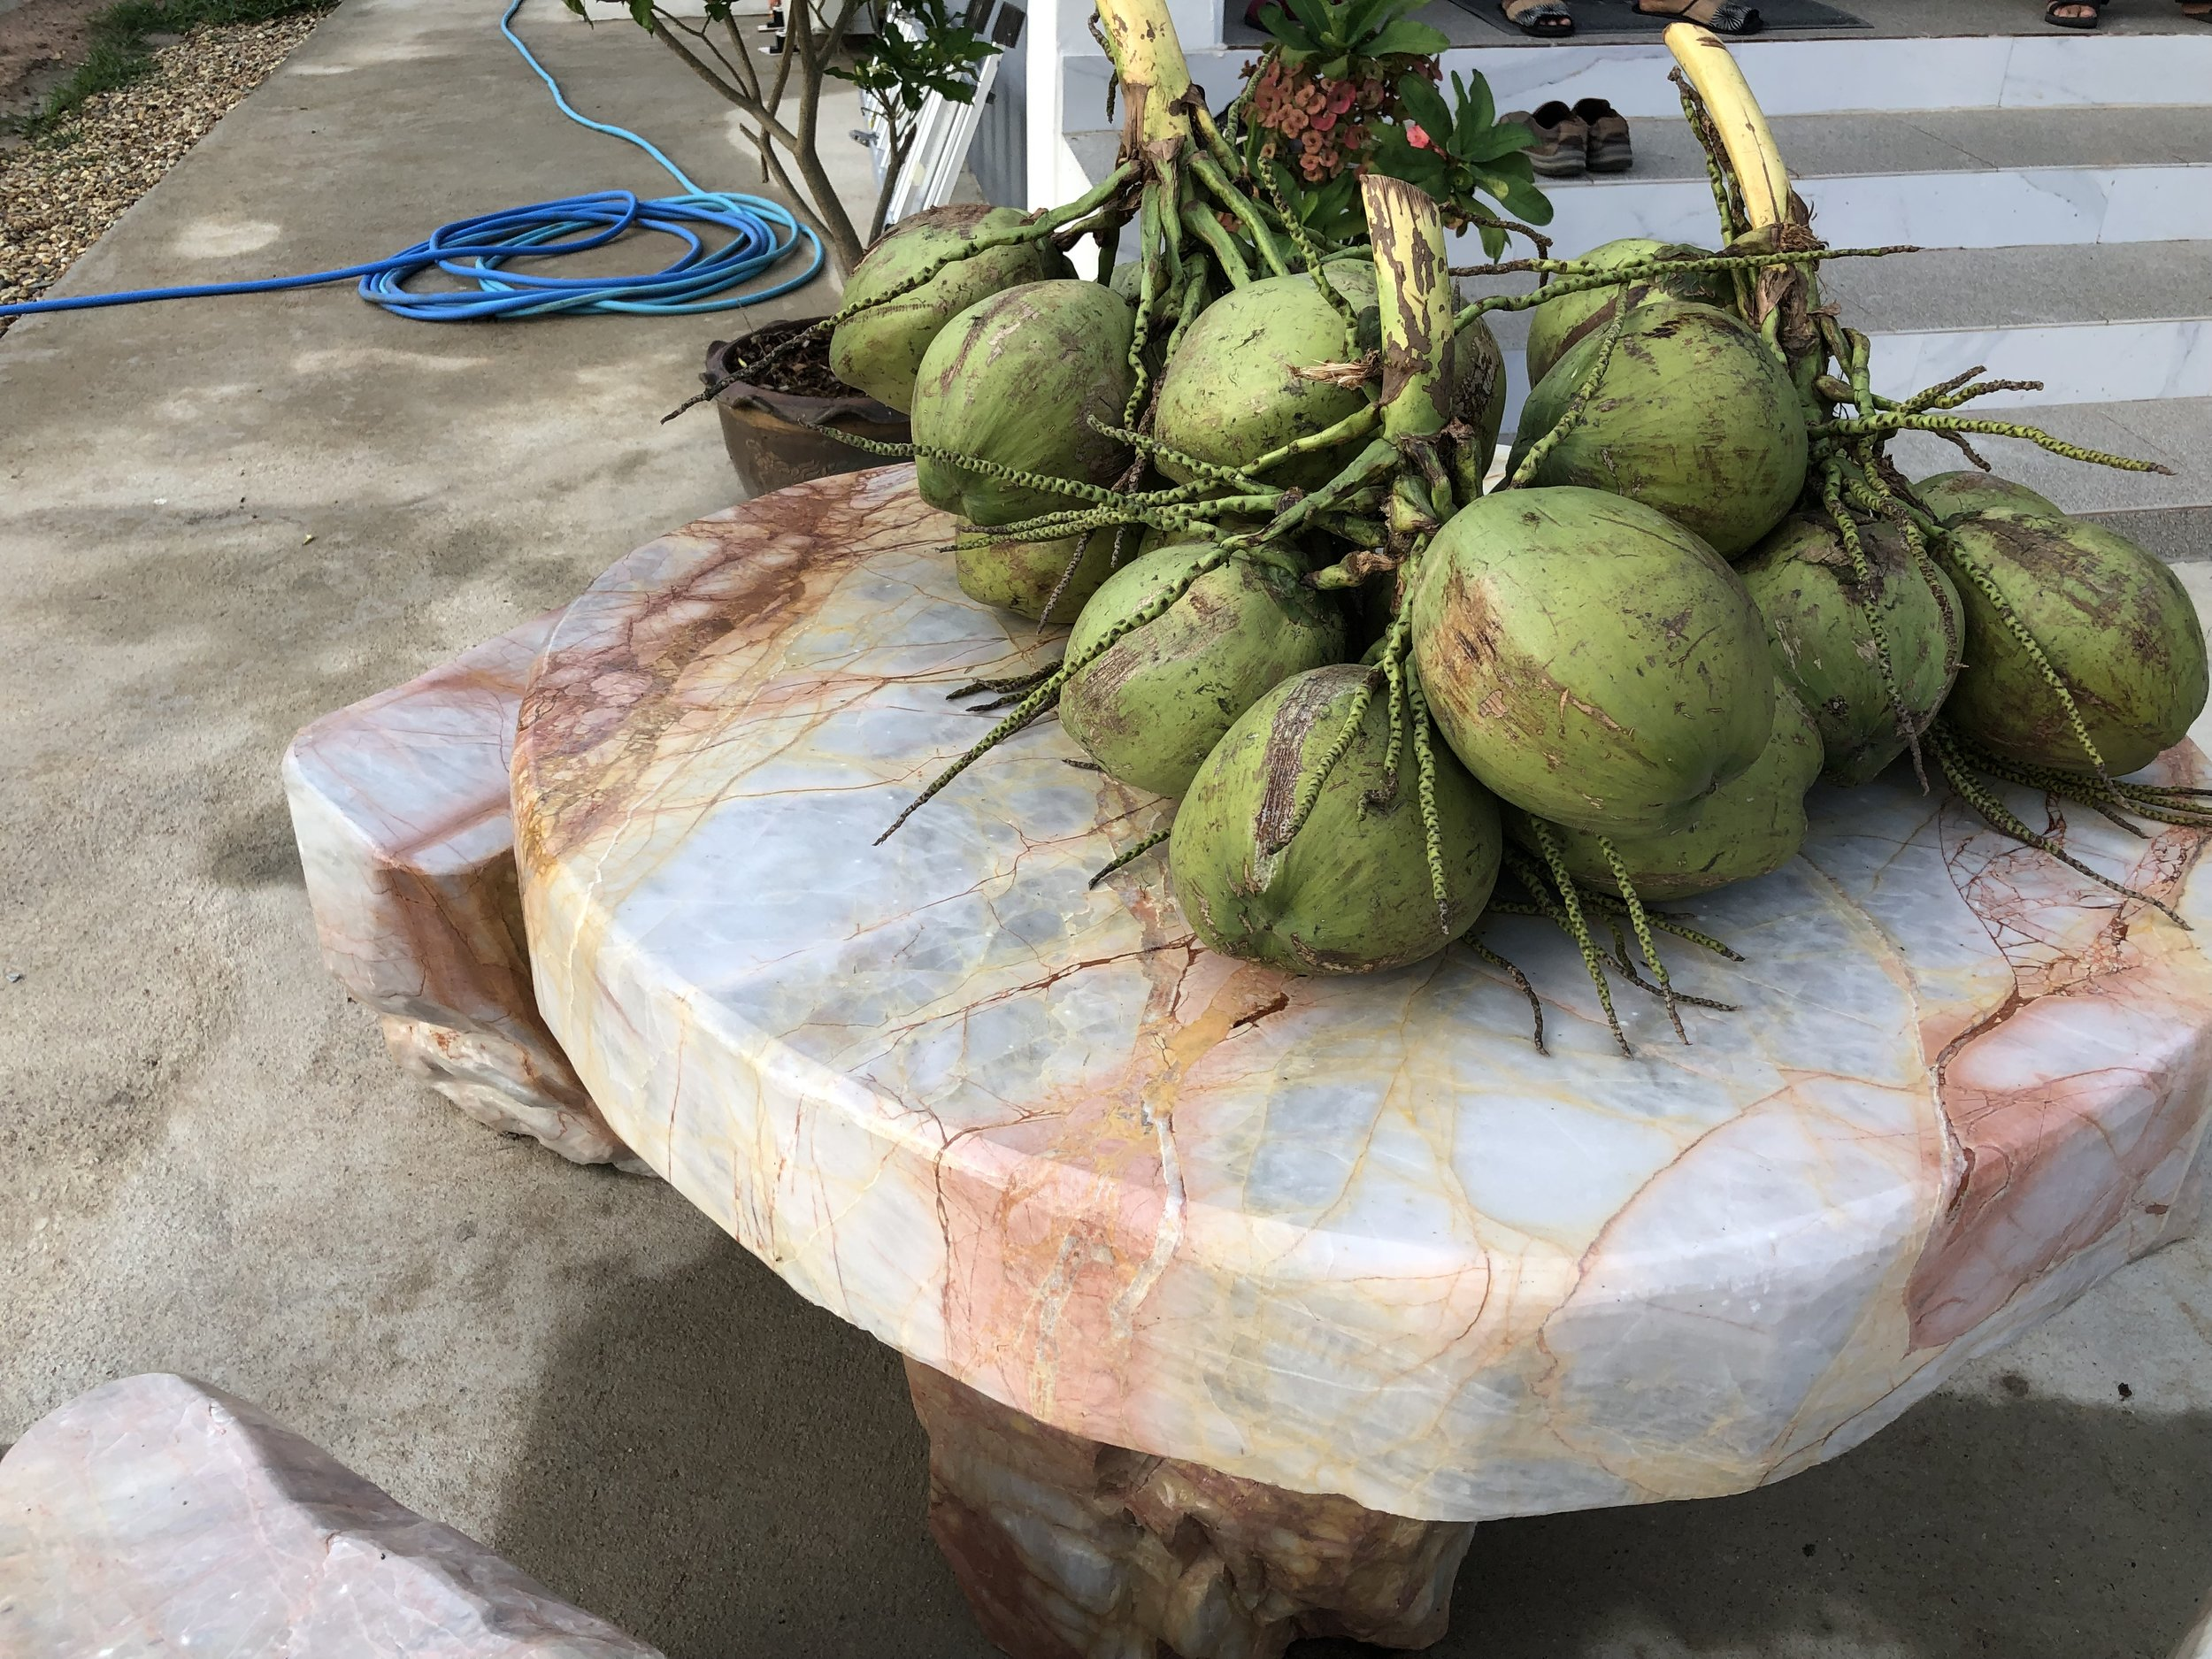 Coconuts we enjoyed this morning, the calm before the storm